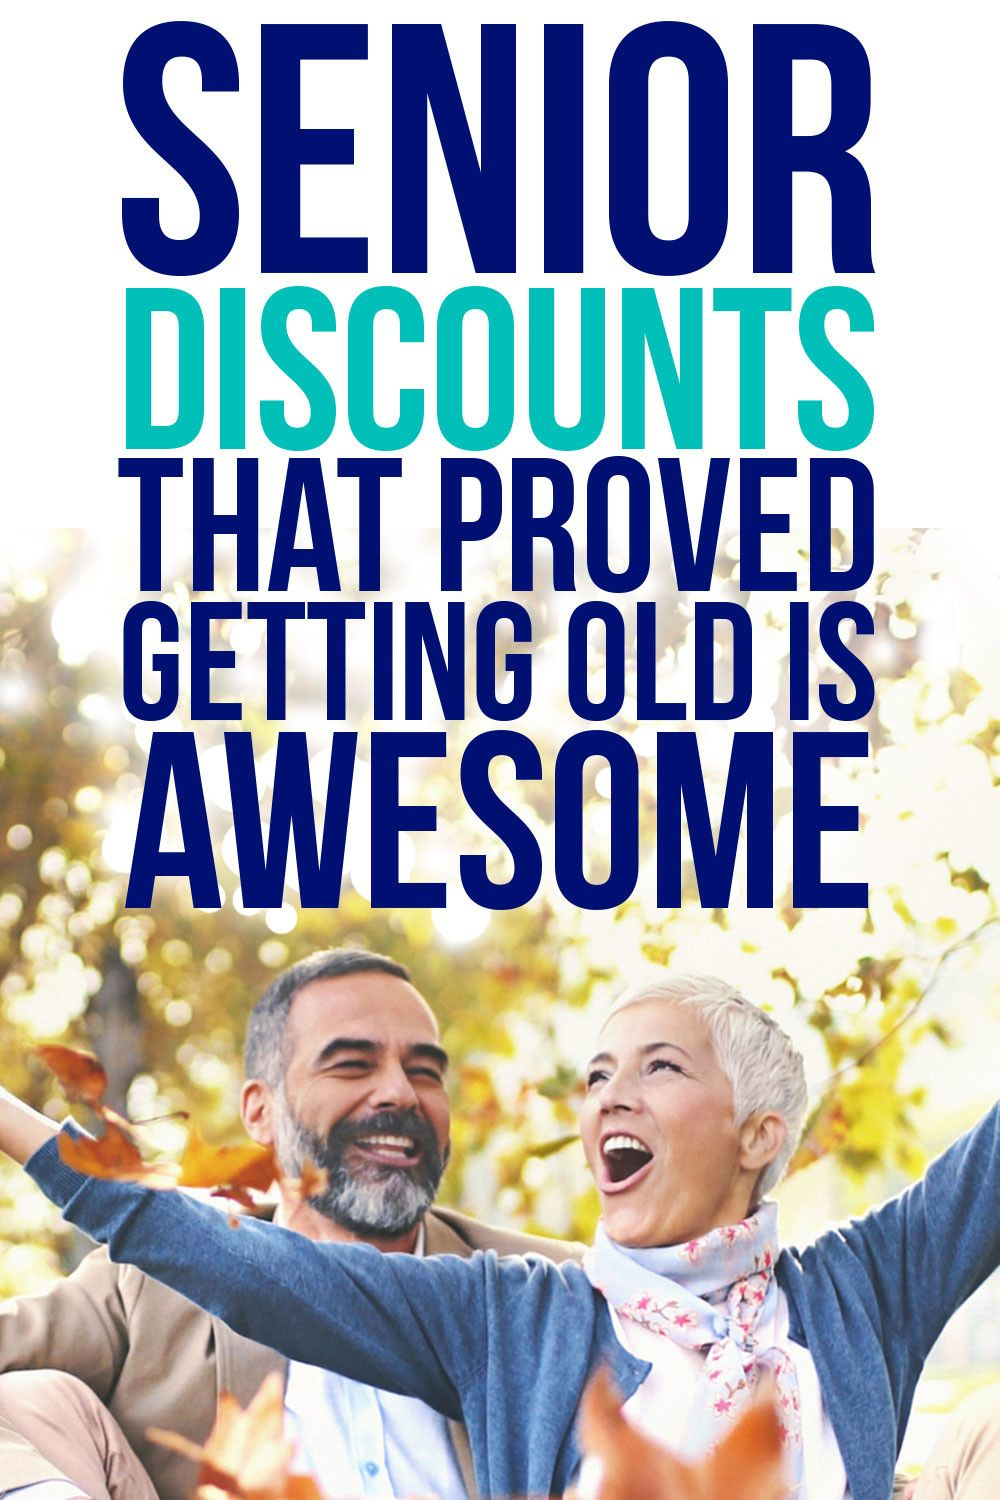 What stores offer senior discounts